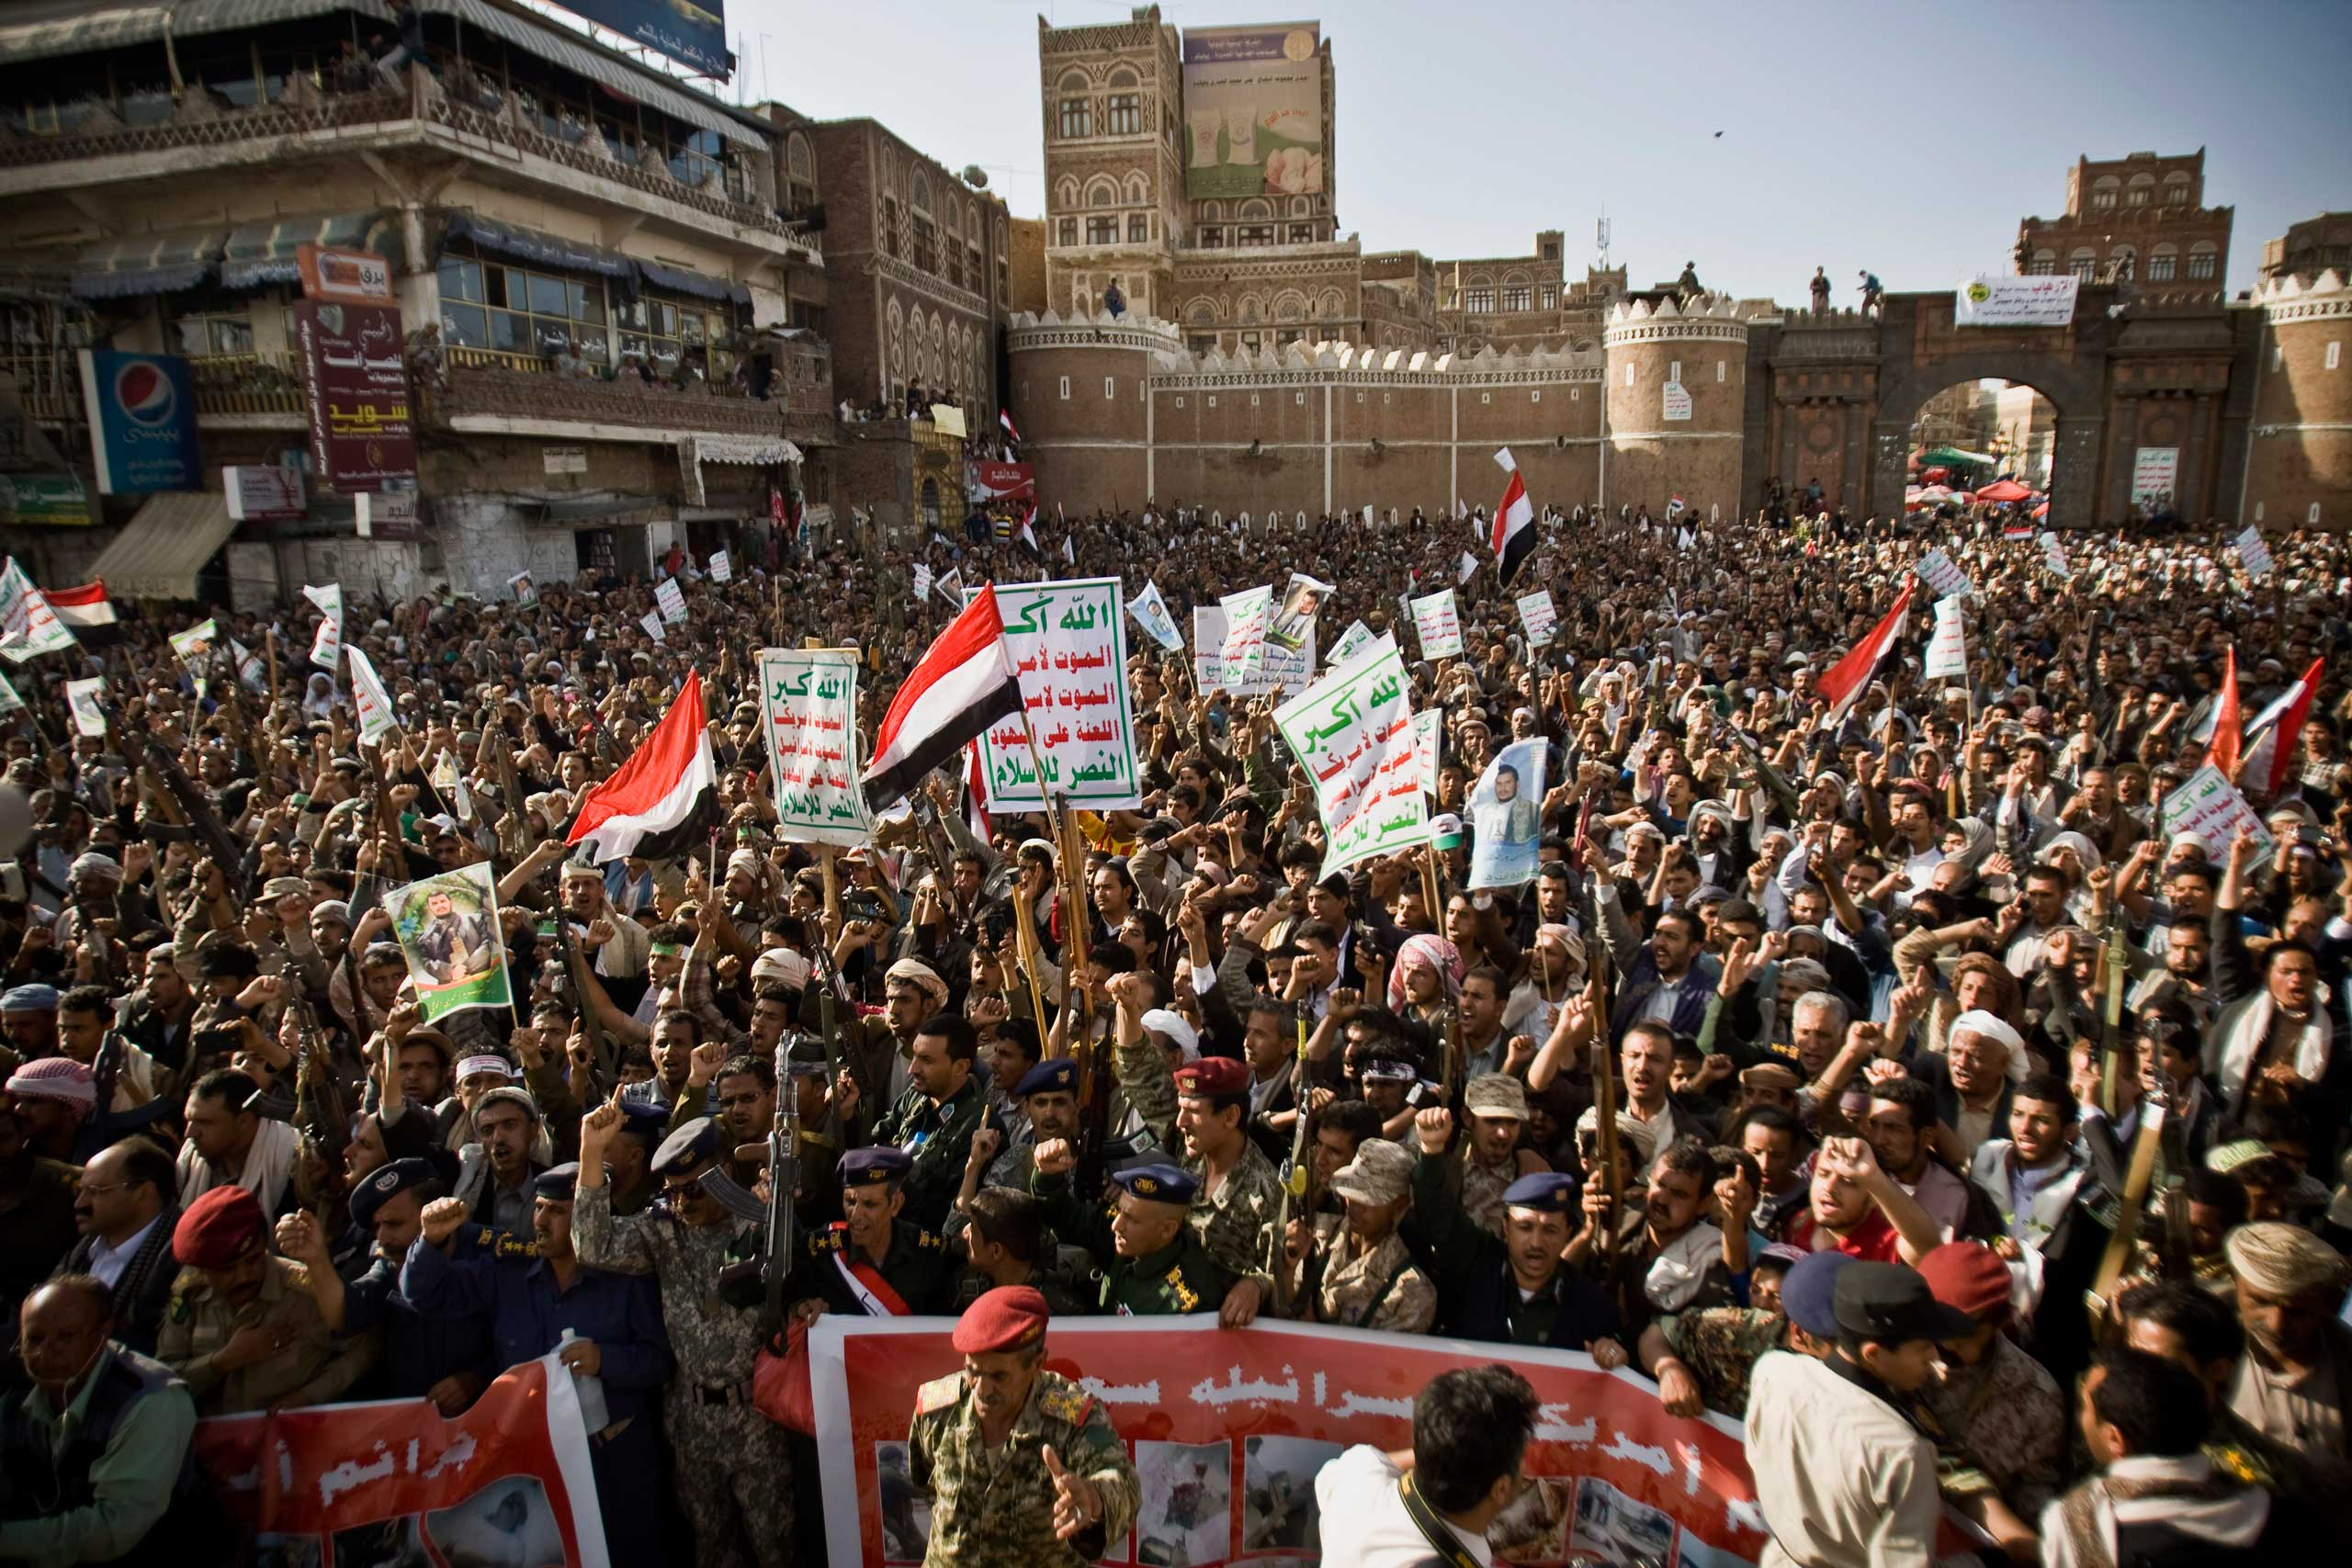 Shiite rebels, known as Houthis, chant slogans to protest against Saudi-led airstrikes, during a rally in Sanaa, Yemen, Wednesday, April 1, 2015.